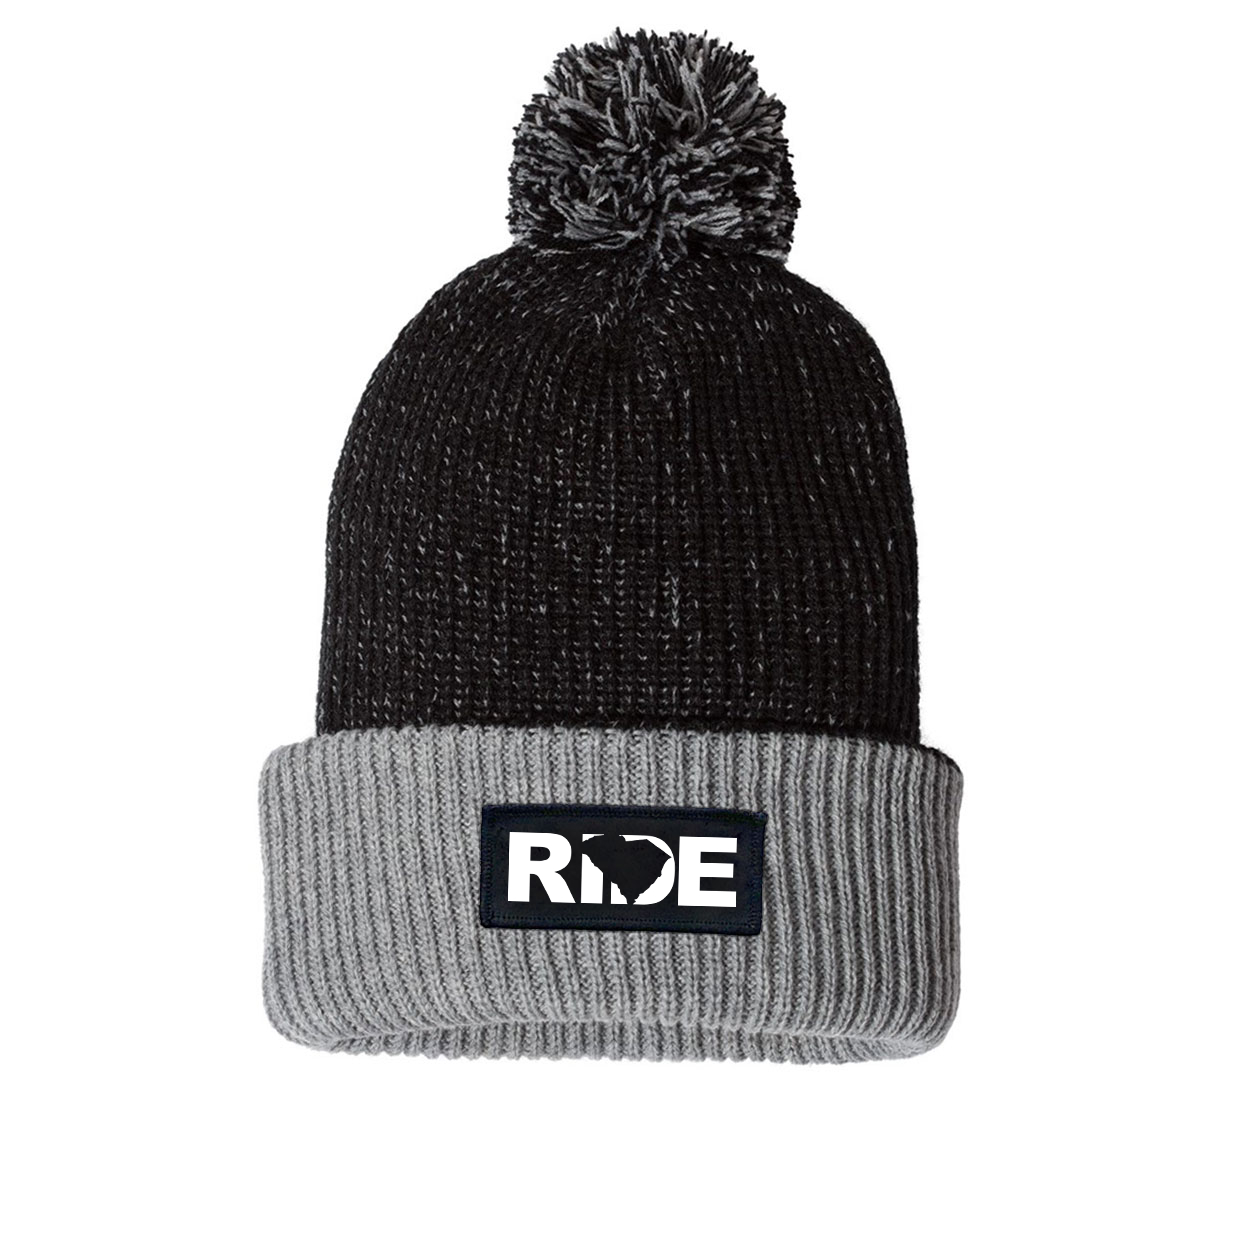 Ride South Carolina Night Out Woven Patch Roll Up Pom Knit Beanie Black/Gray (White Logo)